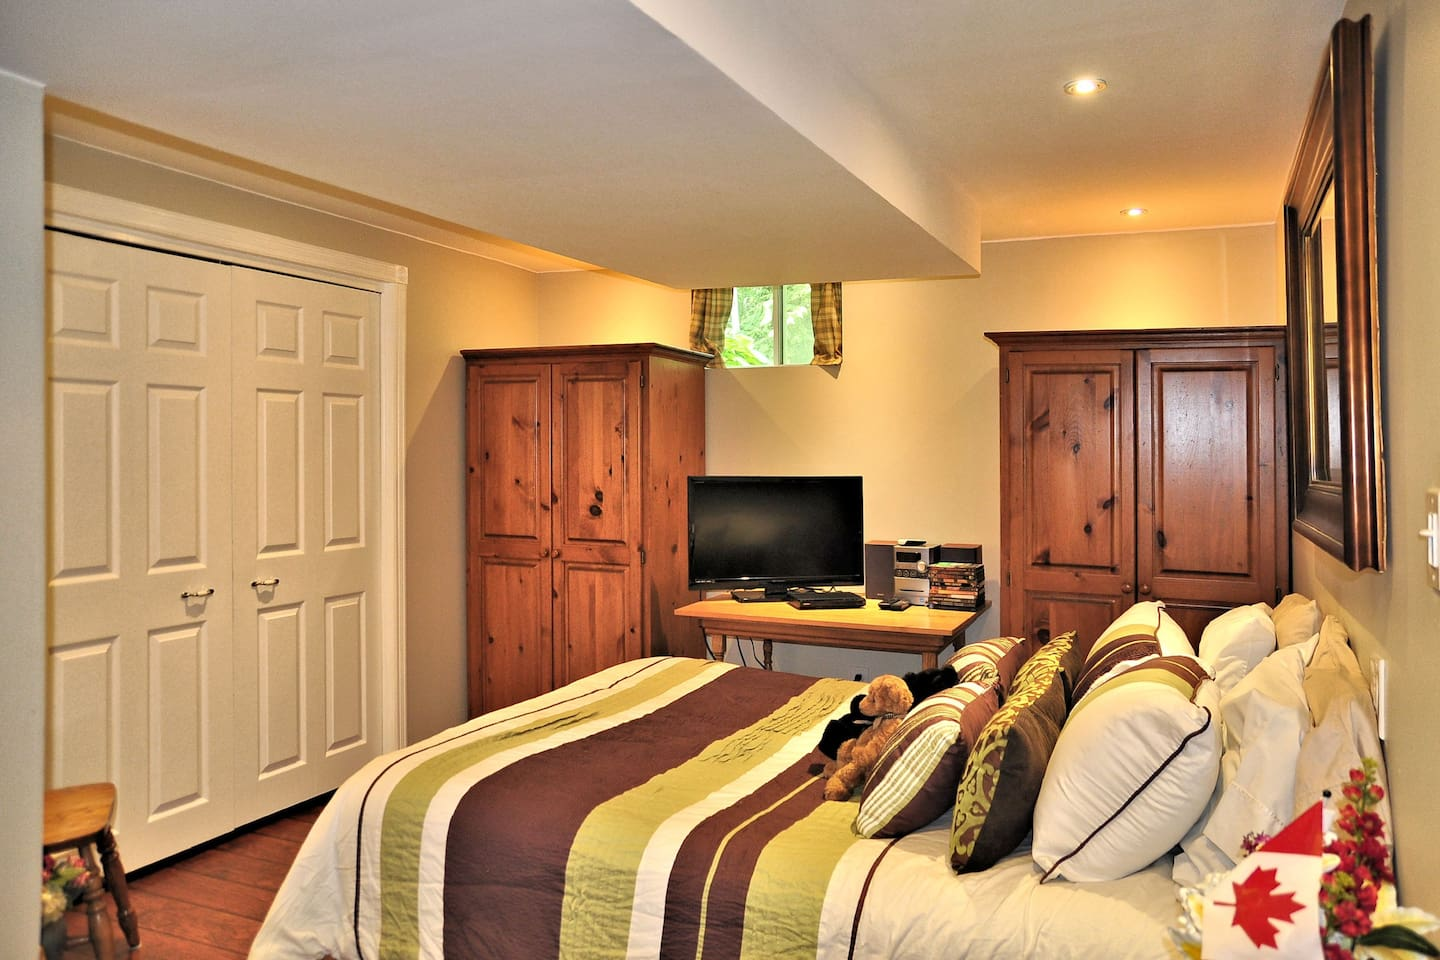 Private Luxury - lower level suite with full kitchen, private bath, and living/sitting area